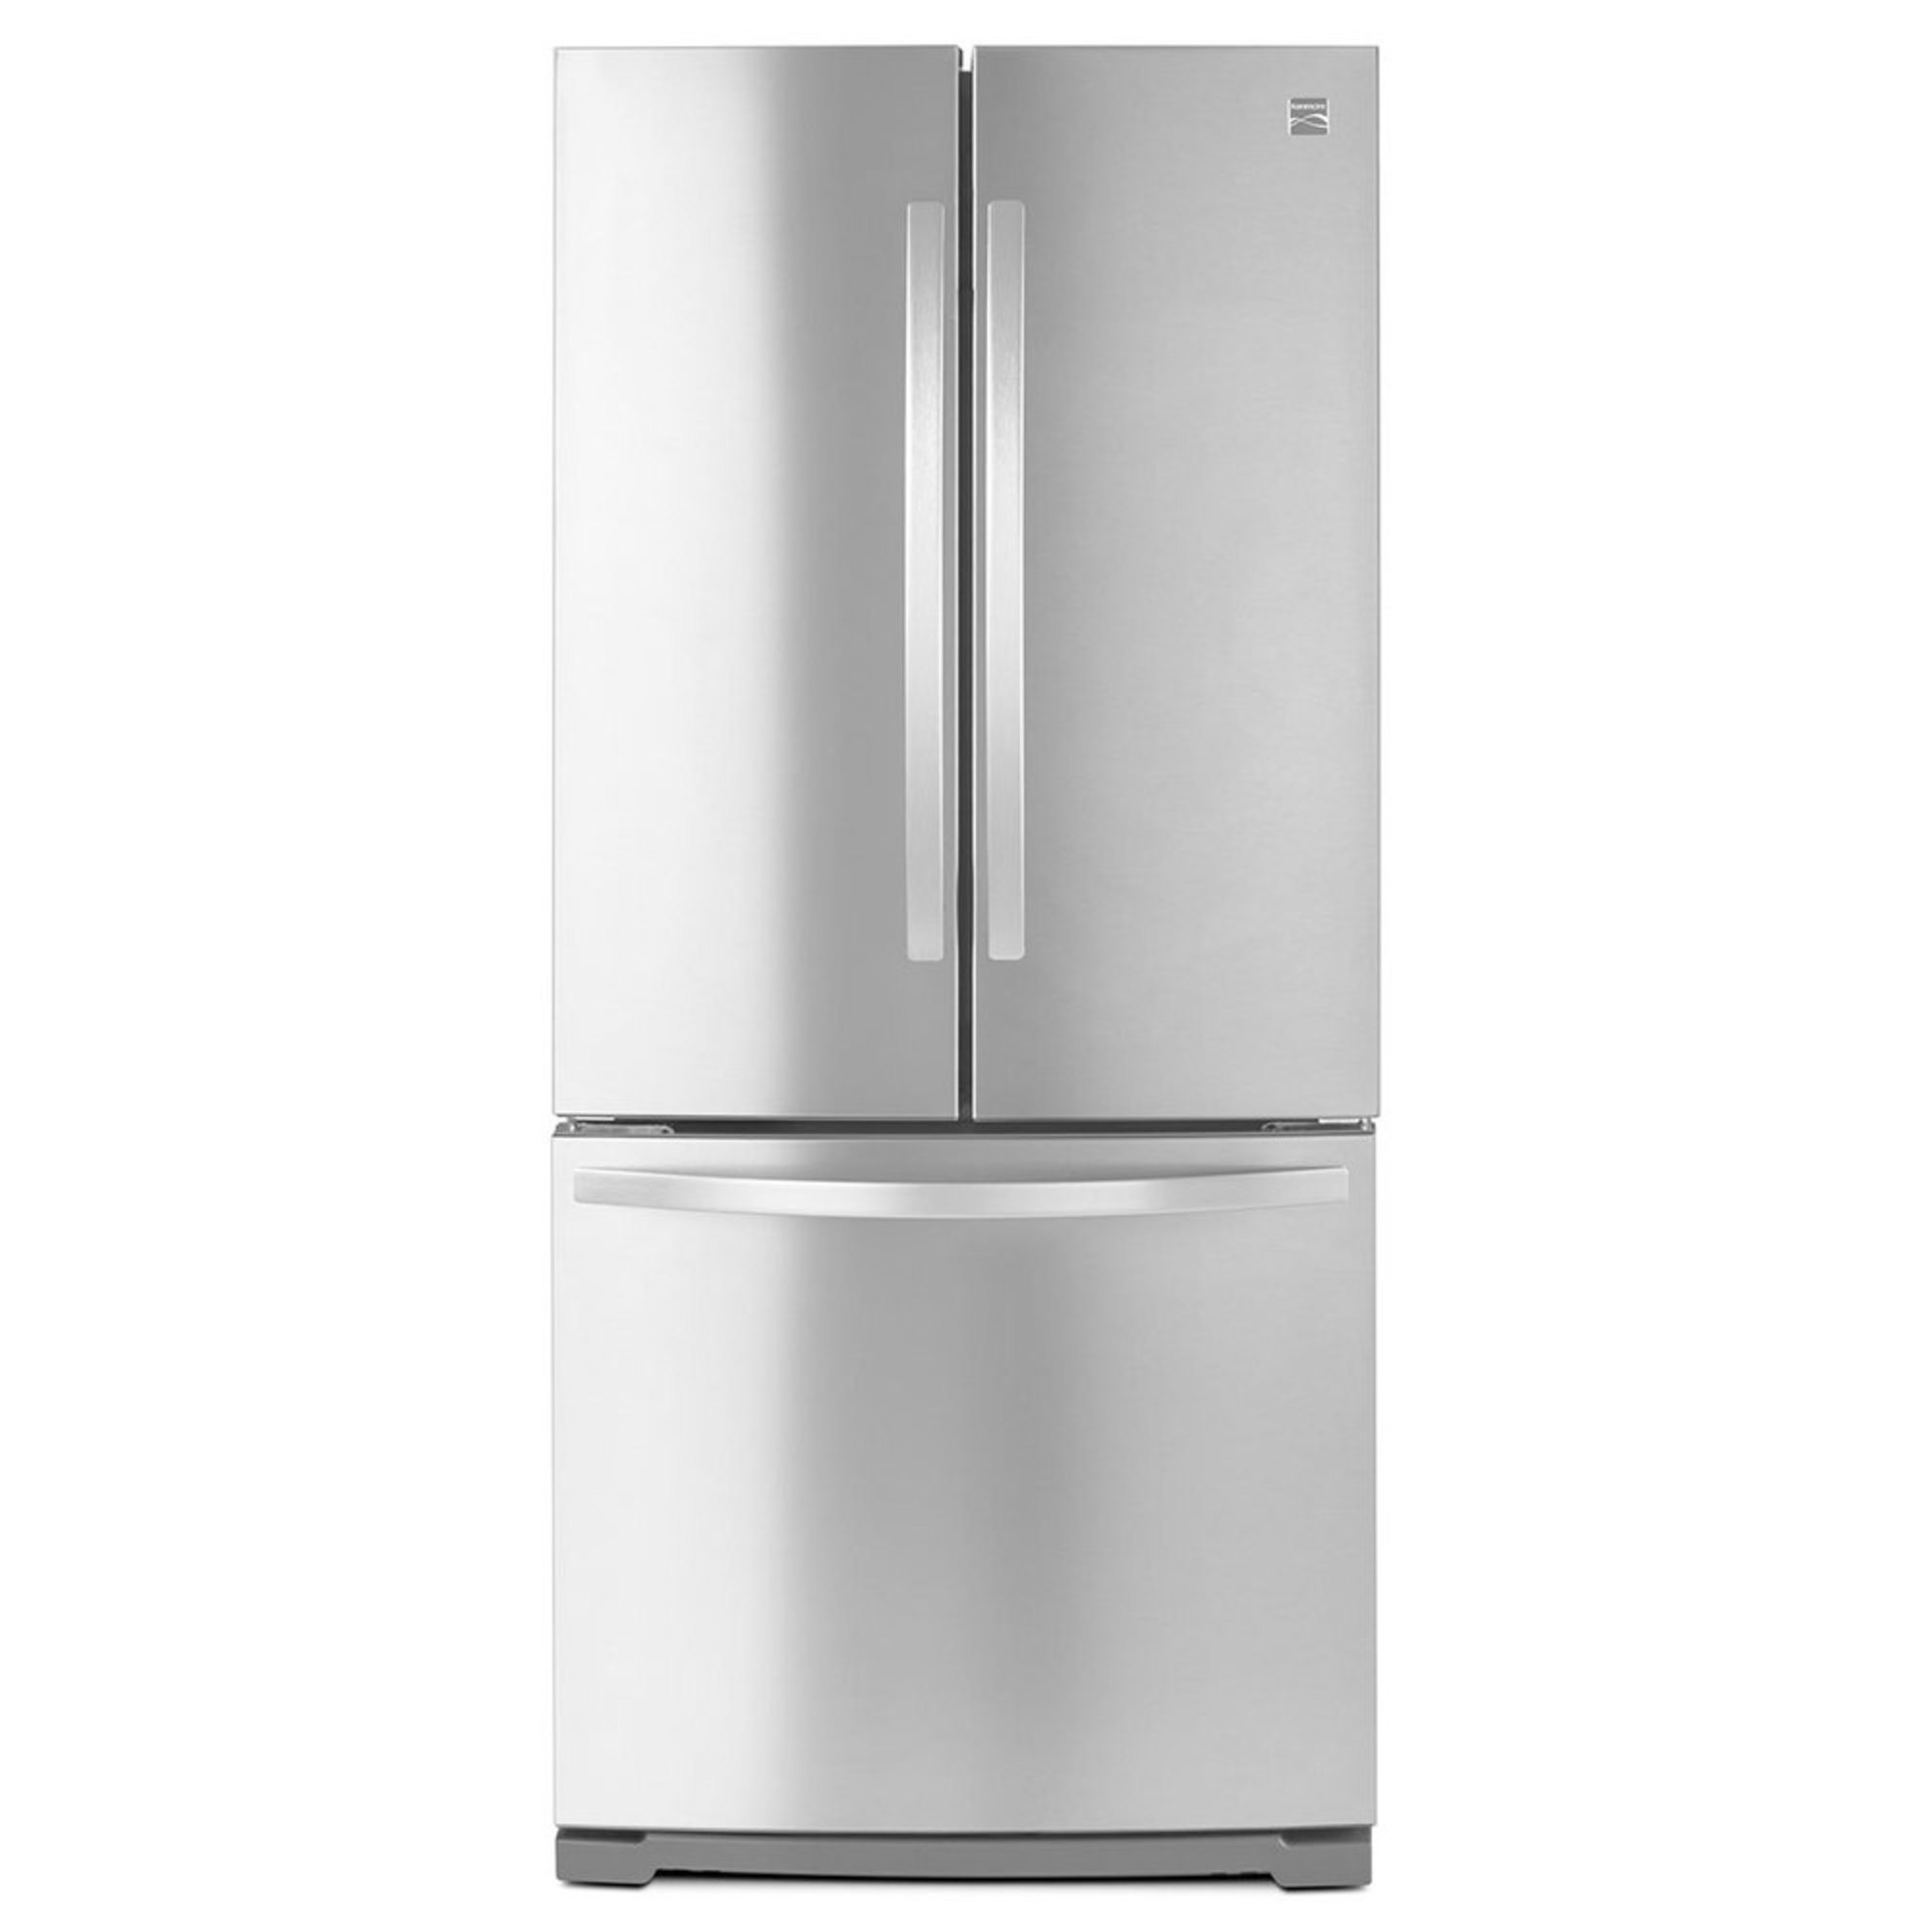 Kenmore 19 5 french door refrigerator stainless for 19 5 cu ft french door refrigerator